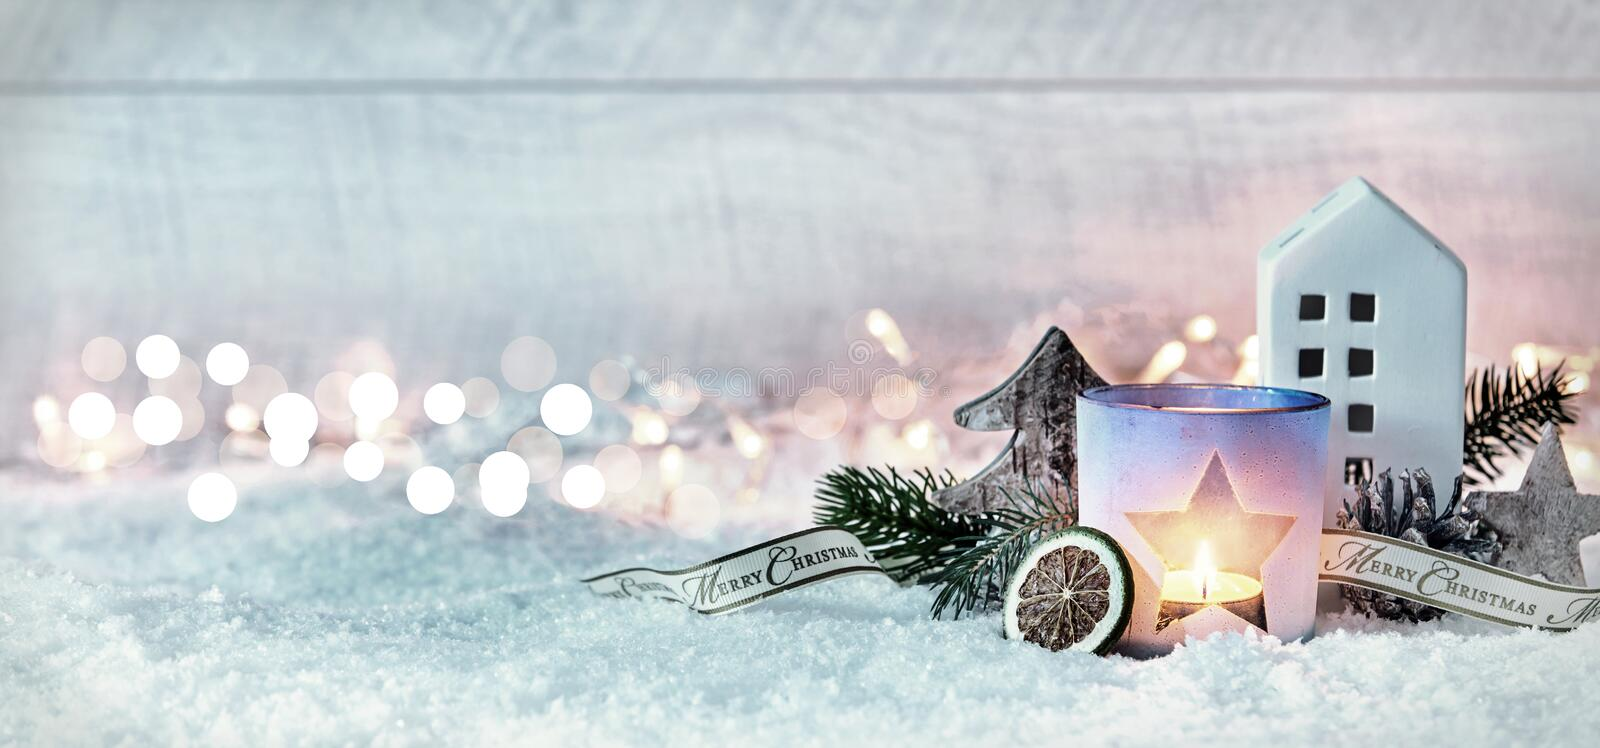 Wintry Merry Christmas festive panorama banner royalty free stock photography